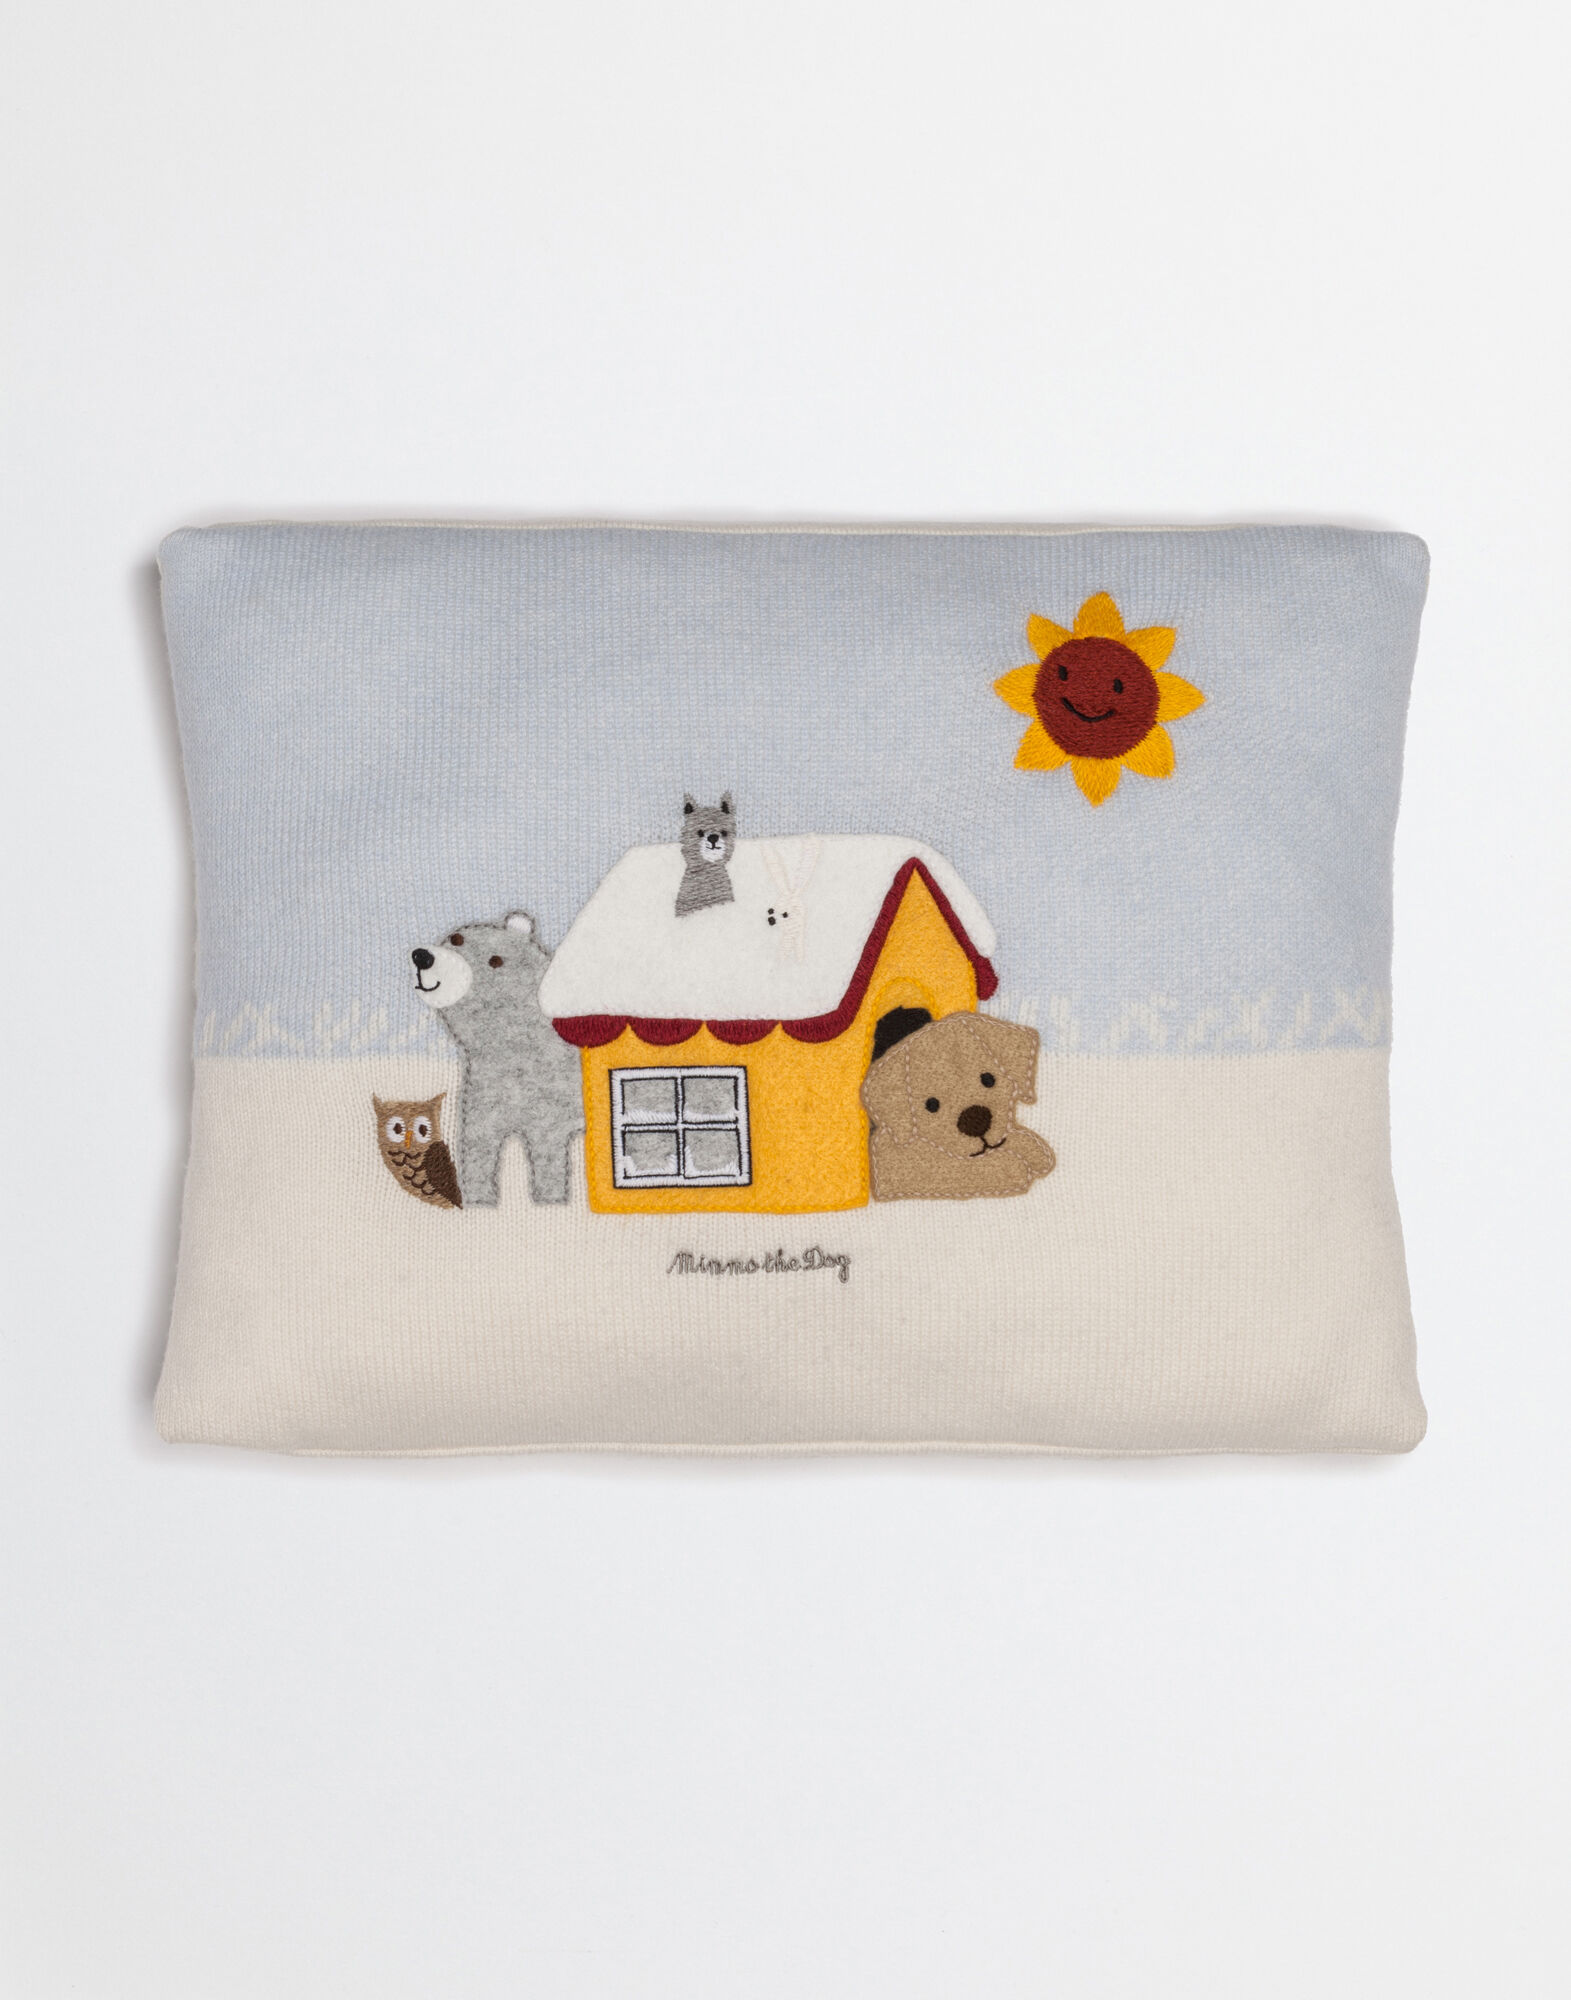 MIMMO THE DOG CASHMERE PILLOW